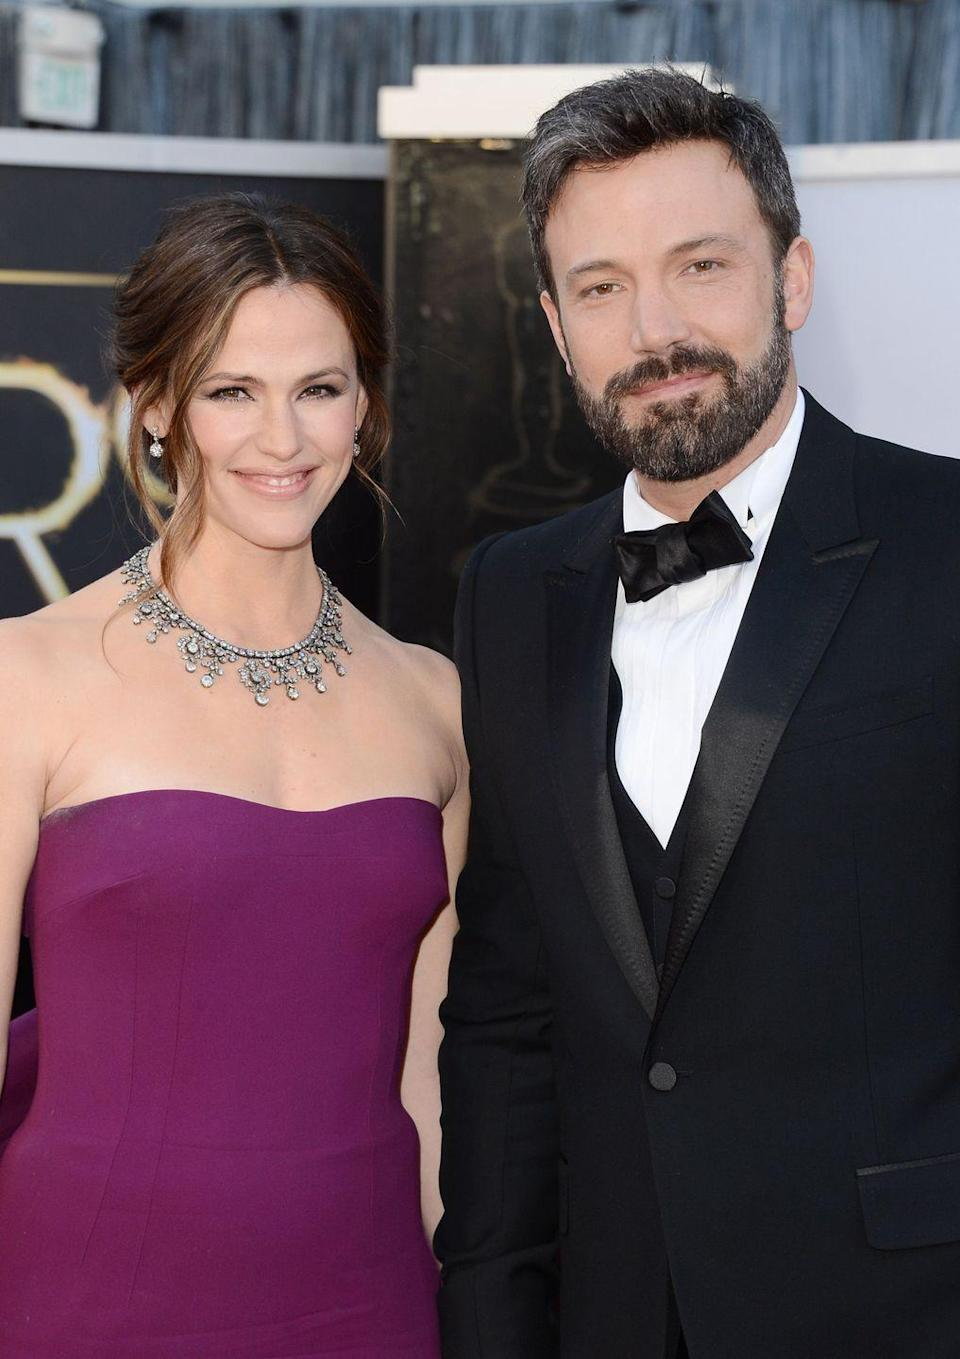 """<p>Less than one year after announcing their separation, Jennifer spoke candidly to <a href=""""https://www.vanityfair.com/hollywood/2016/02/jennifer-garner-talks-kids-career-ben-affleck"""" rel=""""nofollow noopener"""" target=""""_blank"""" data-ylk=""""slk:Vanity Fair"""" class=""""link rapid-noclick-resp"""">Vanity Fair</a> about the 'nannygate' scandal, confirming that the nanny 'was not a part of the equation.' </p><p>Jennifer also offered this about Ben: 'I always say, 'When his sun shines on you, you feel it.' But when the sun is shining elsewhere, it's cold. He can cast quite a shadow.' (Yes, the line is borrowed from The Talented Mr. Ripley, starring Ben's BFF Matt Damon.)</p>"""